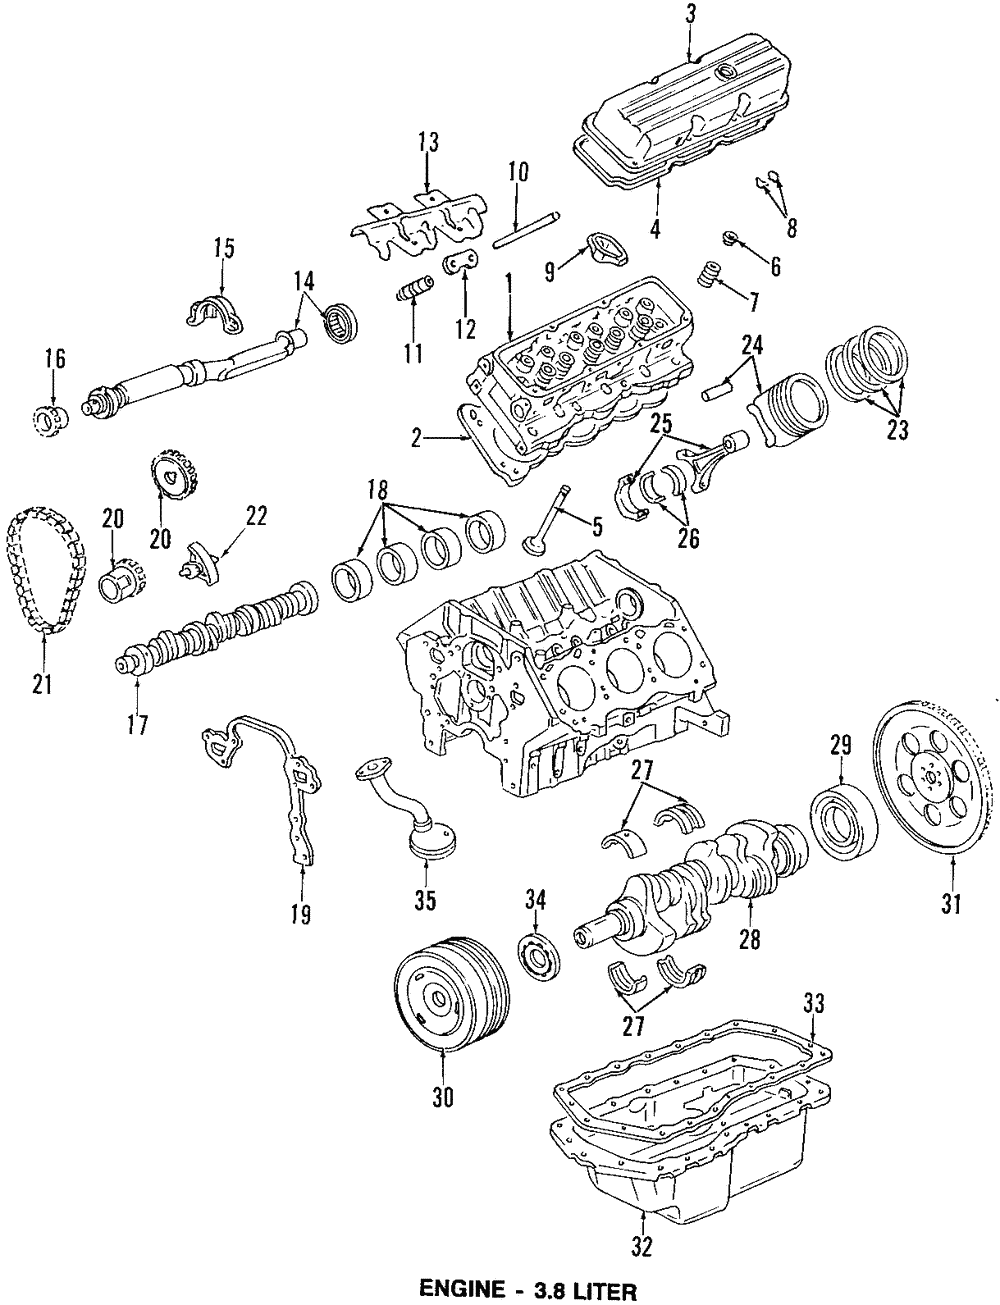 medium resolution of oem 3 8l engine valve lifter guide buick chevrolet oldsmobile pontiac 24503256 main image part can be found as 12 in the diagram above